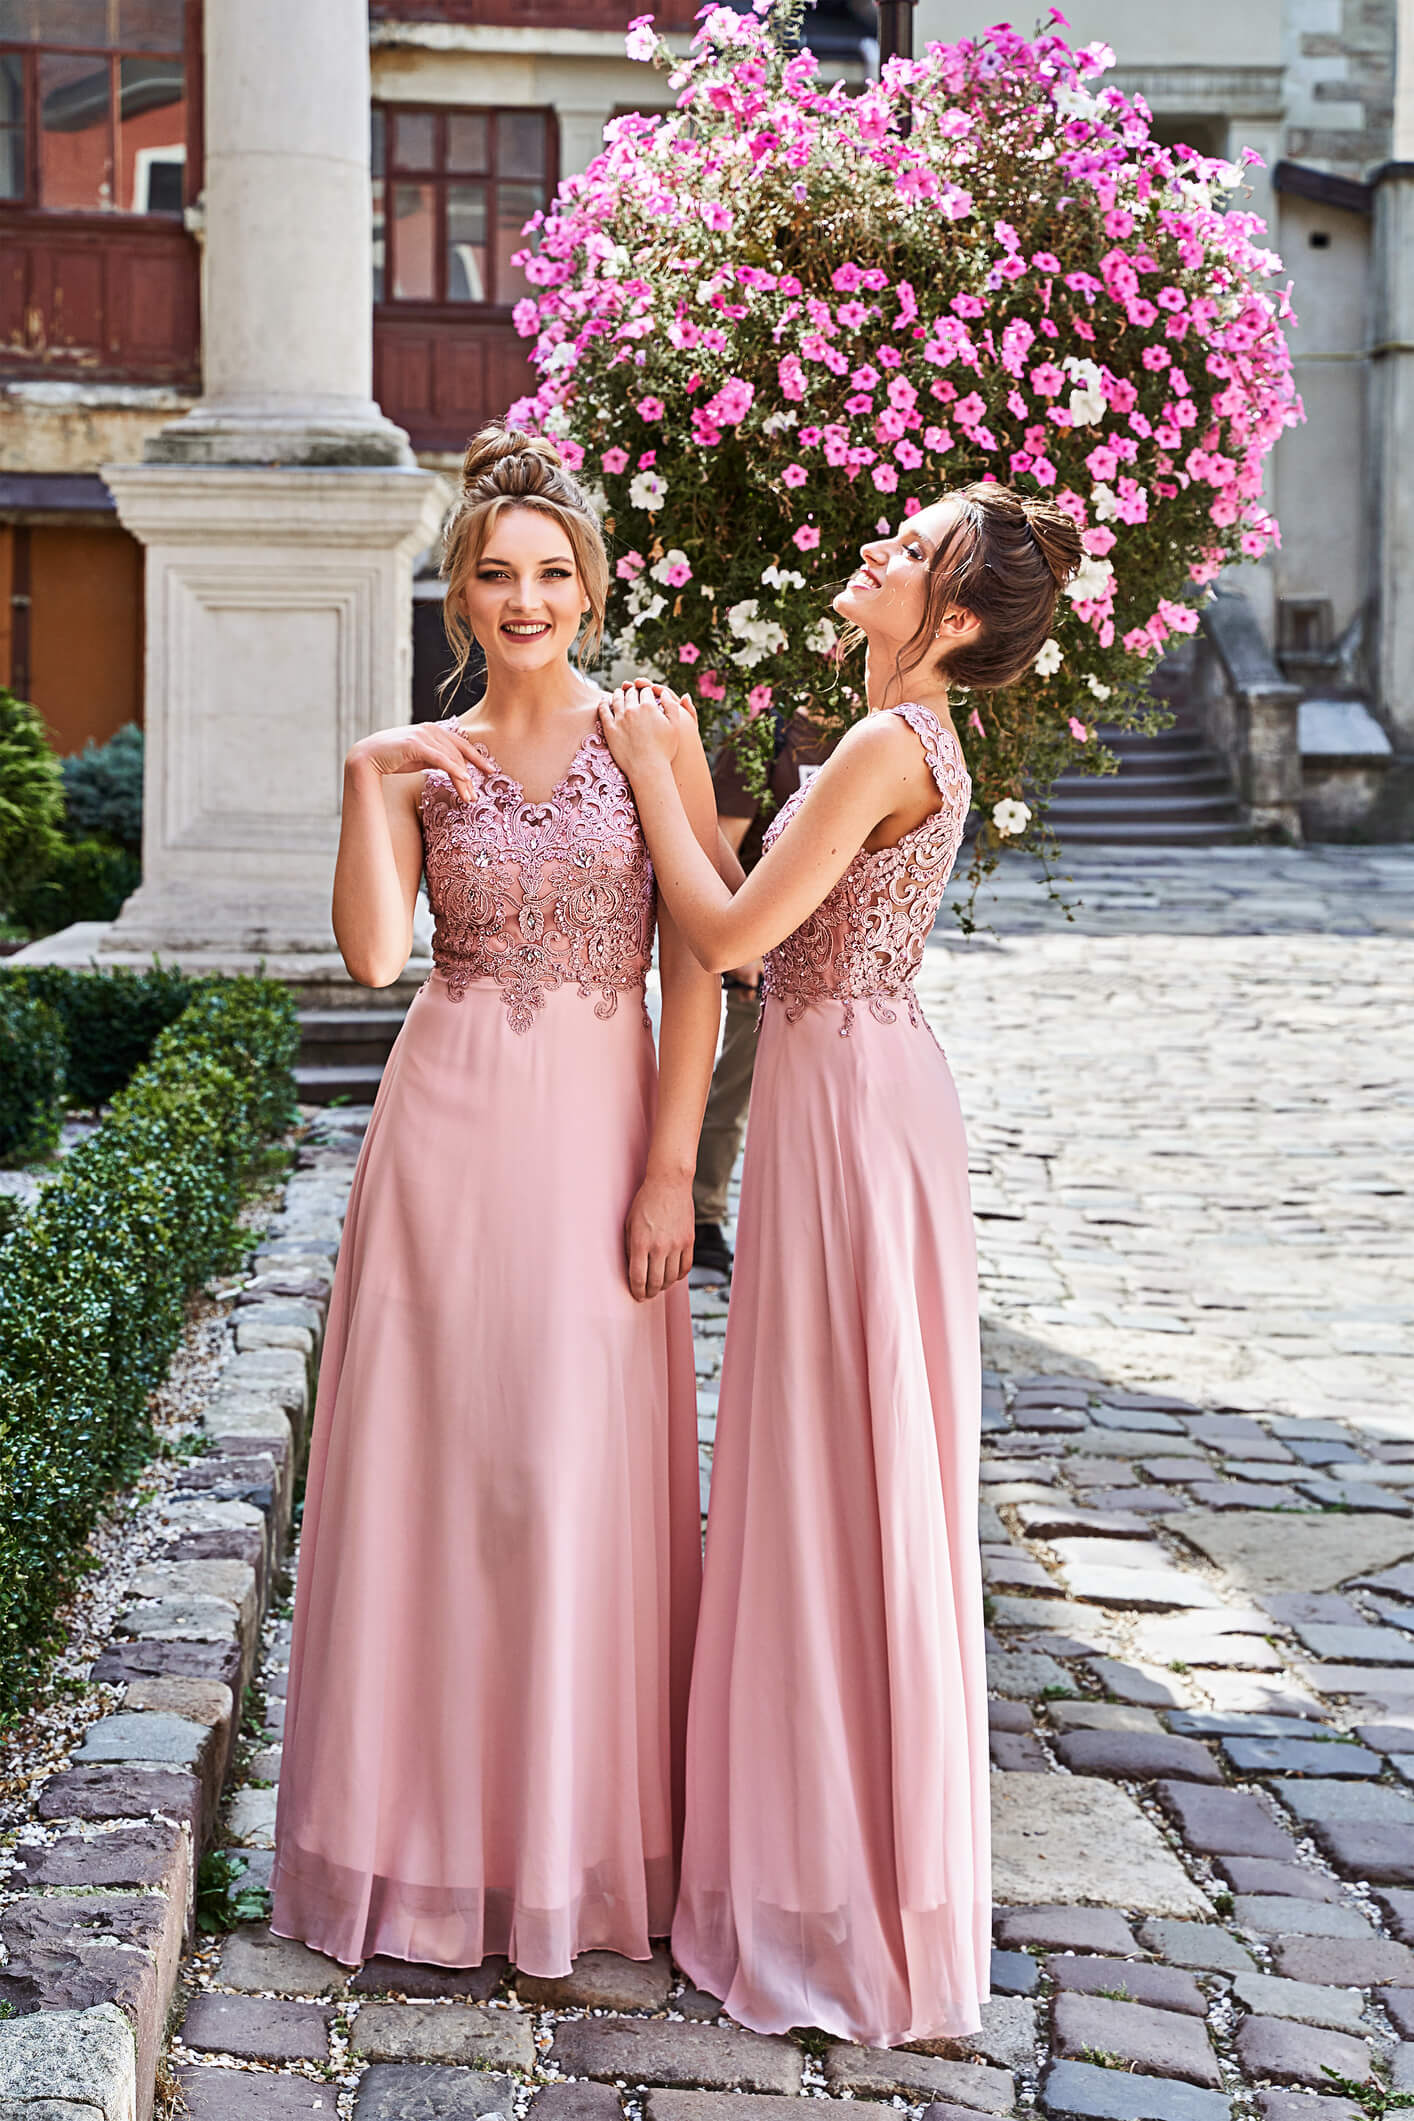 Beautiful blonde and brunette bridesmaids with luxury hairdo in gorgeous elegant stylish pale pink floor length v neck chiffon gown dress decorated with sequins sparkles and rhinestones on flowers background. Wedding day in old beautiful European city.